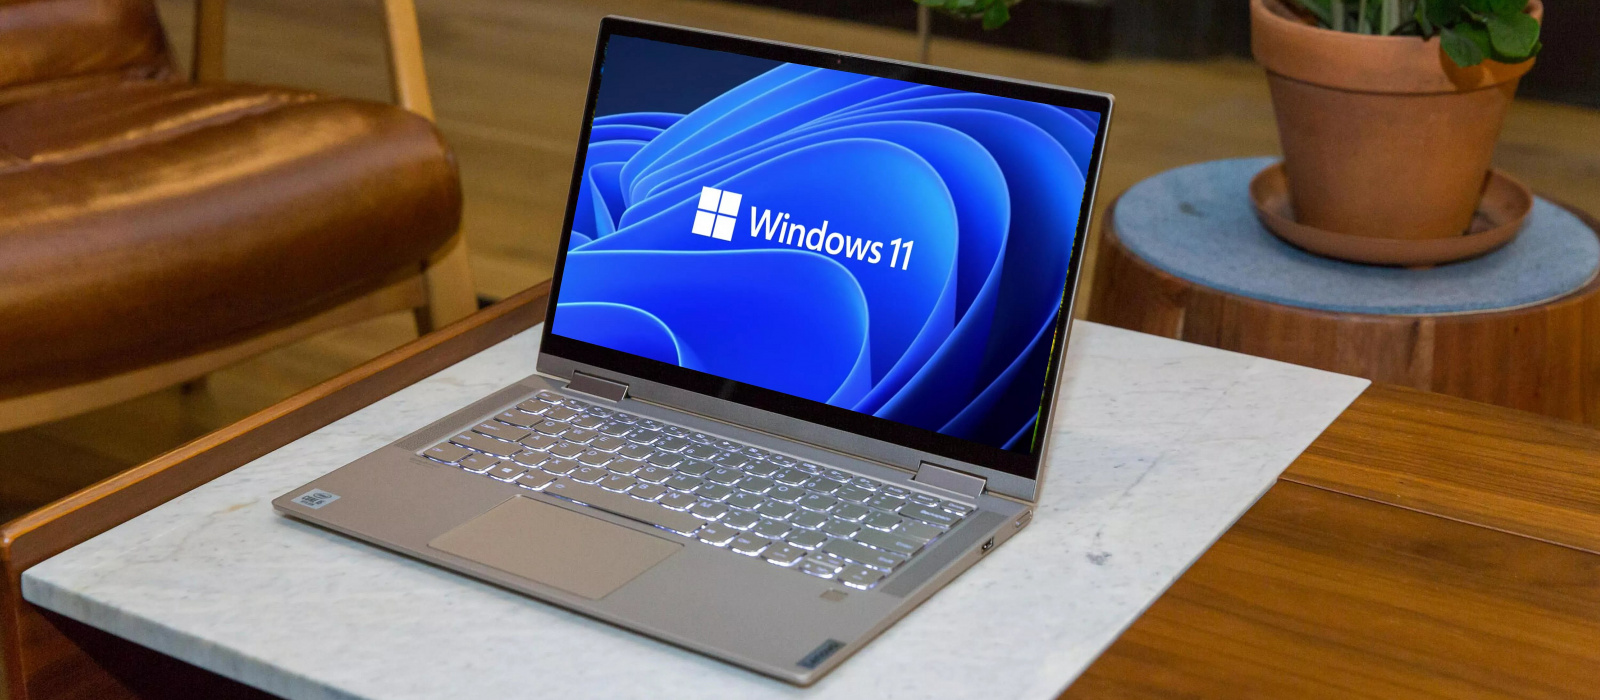 Windows 11 technical issues FAQ - how to fix installation error, how to install the system without TPM 2.0 and how to fix memory error